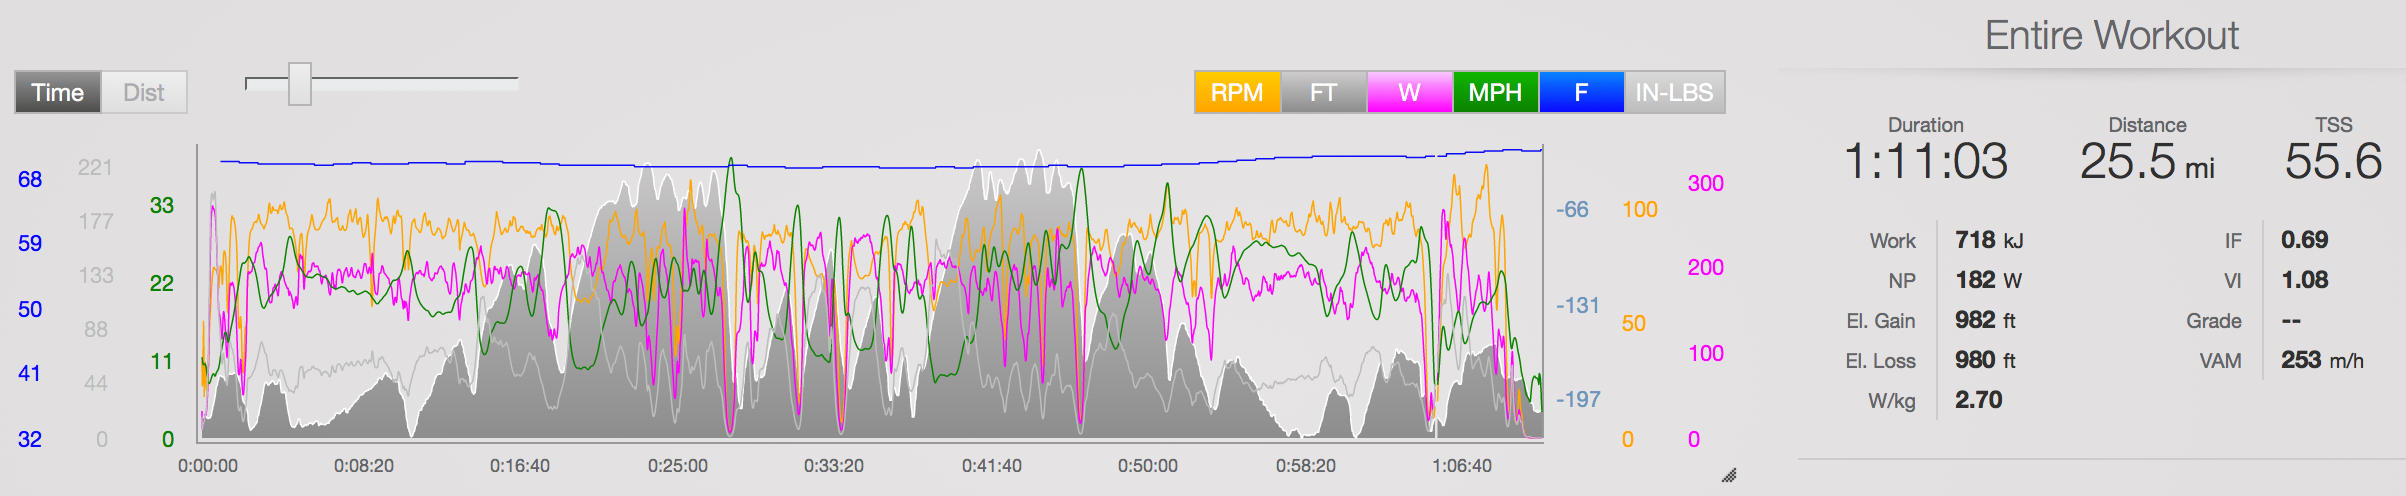 2014 NYC Tri Bike File ( Link )   W/kg is accurate. Average Power was just 168w, but I weighed nada in 2014. 62kg or 136lbs. IF is off. FTP in these days was 215 or so, putting IF for this ride at ~.85. Check out the VI! 1.08? Thank god that's gotten better over the years too. The rainy weather on this day definitely made for a slower time, with some gingerly descending.  I ran pretty damn well this year (36:13 or 5:50/mile) and ended up on the podium in M25-29 with 3rd. My guess is that I didn't push as hard as I could have on the bike.